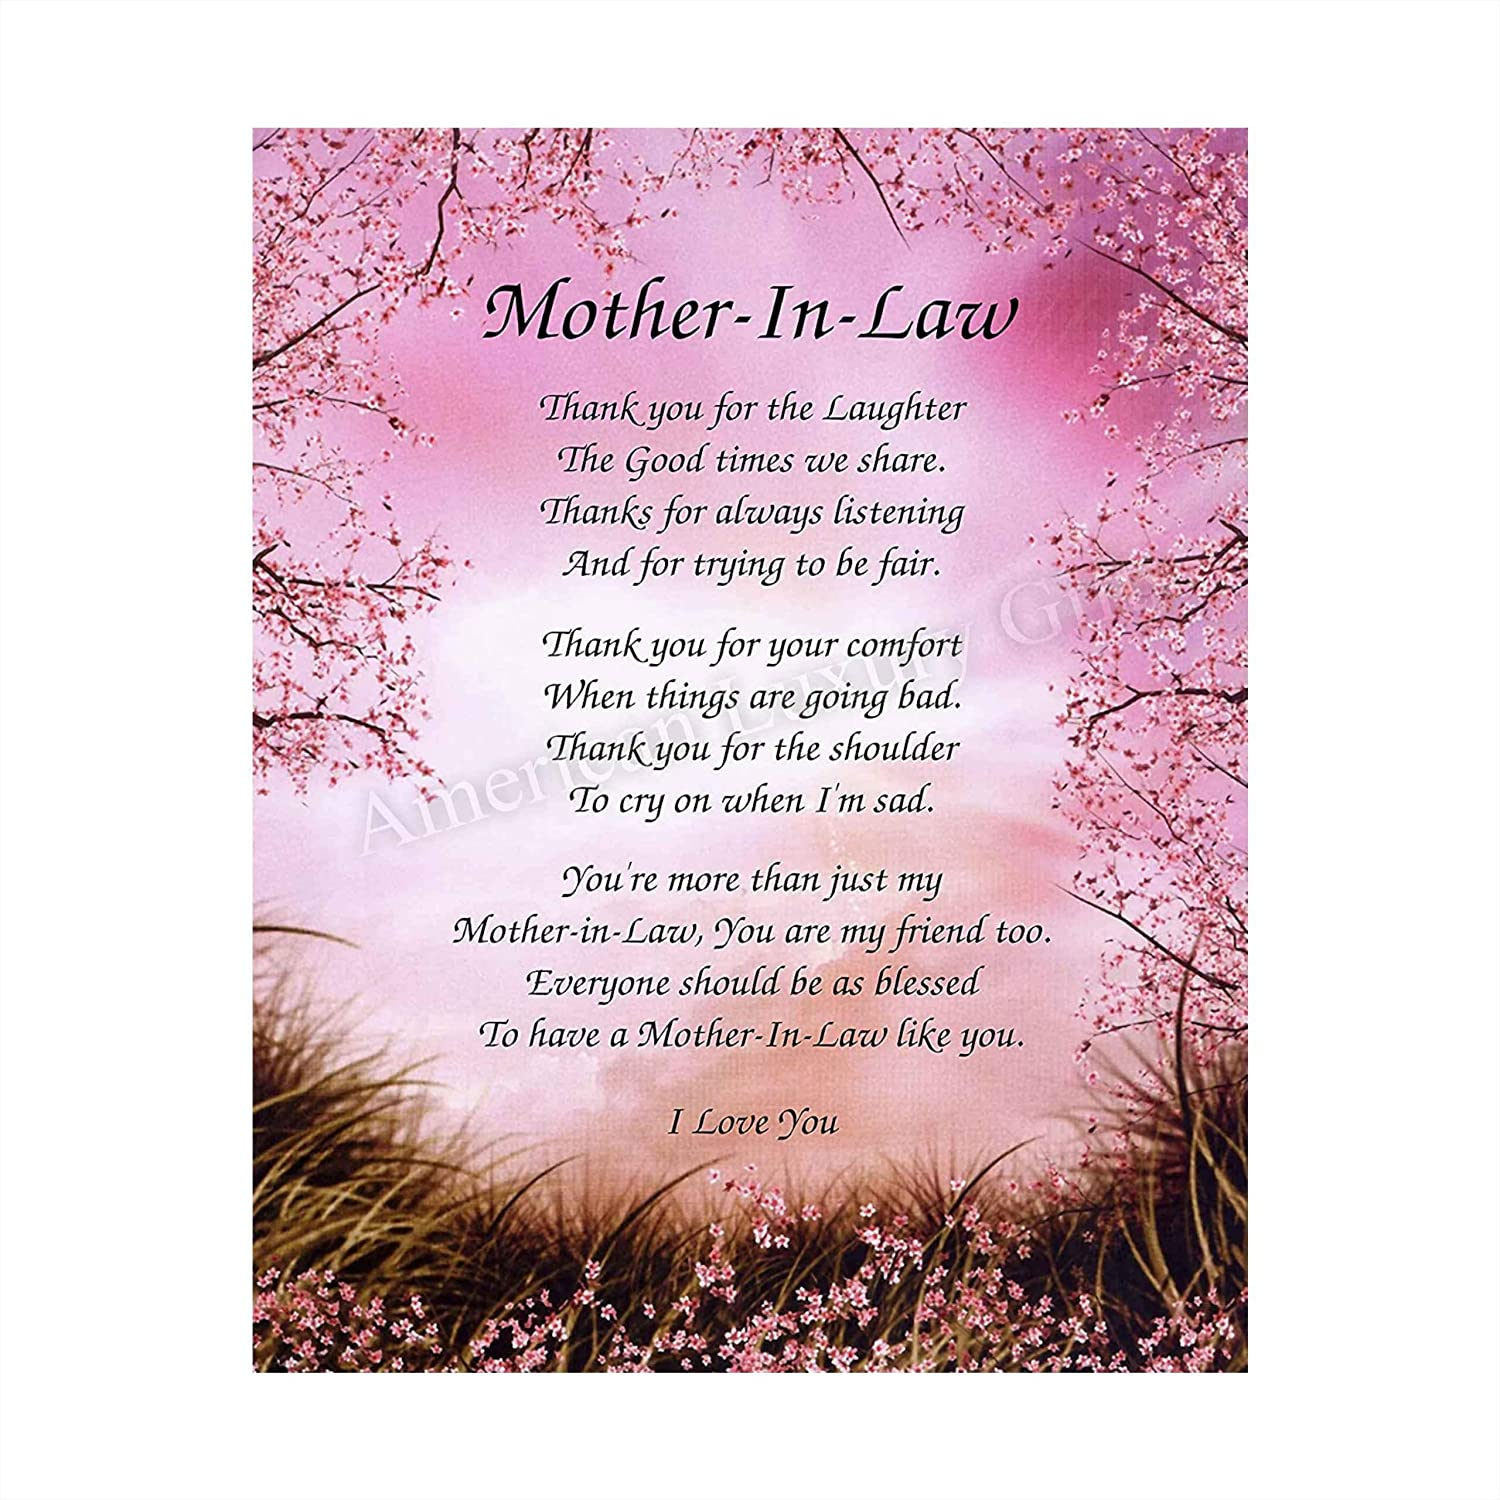 """""""Mother-in-Law- What You Mean To Me""""- 8 x 10"""" Wall Art-Ready to Frame. Heartfelt Gift Saying Thank You To My Second Mother-Friend. Perfect Keepsake Gift for Any Mothers-in-Law's & Brides-Room to Sign."""